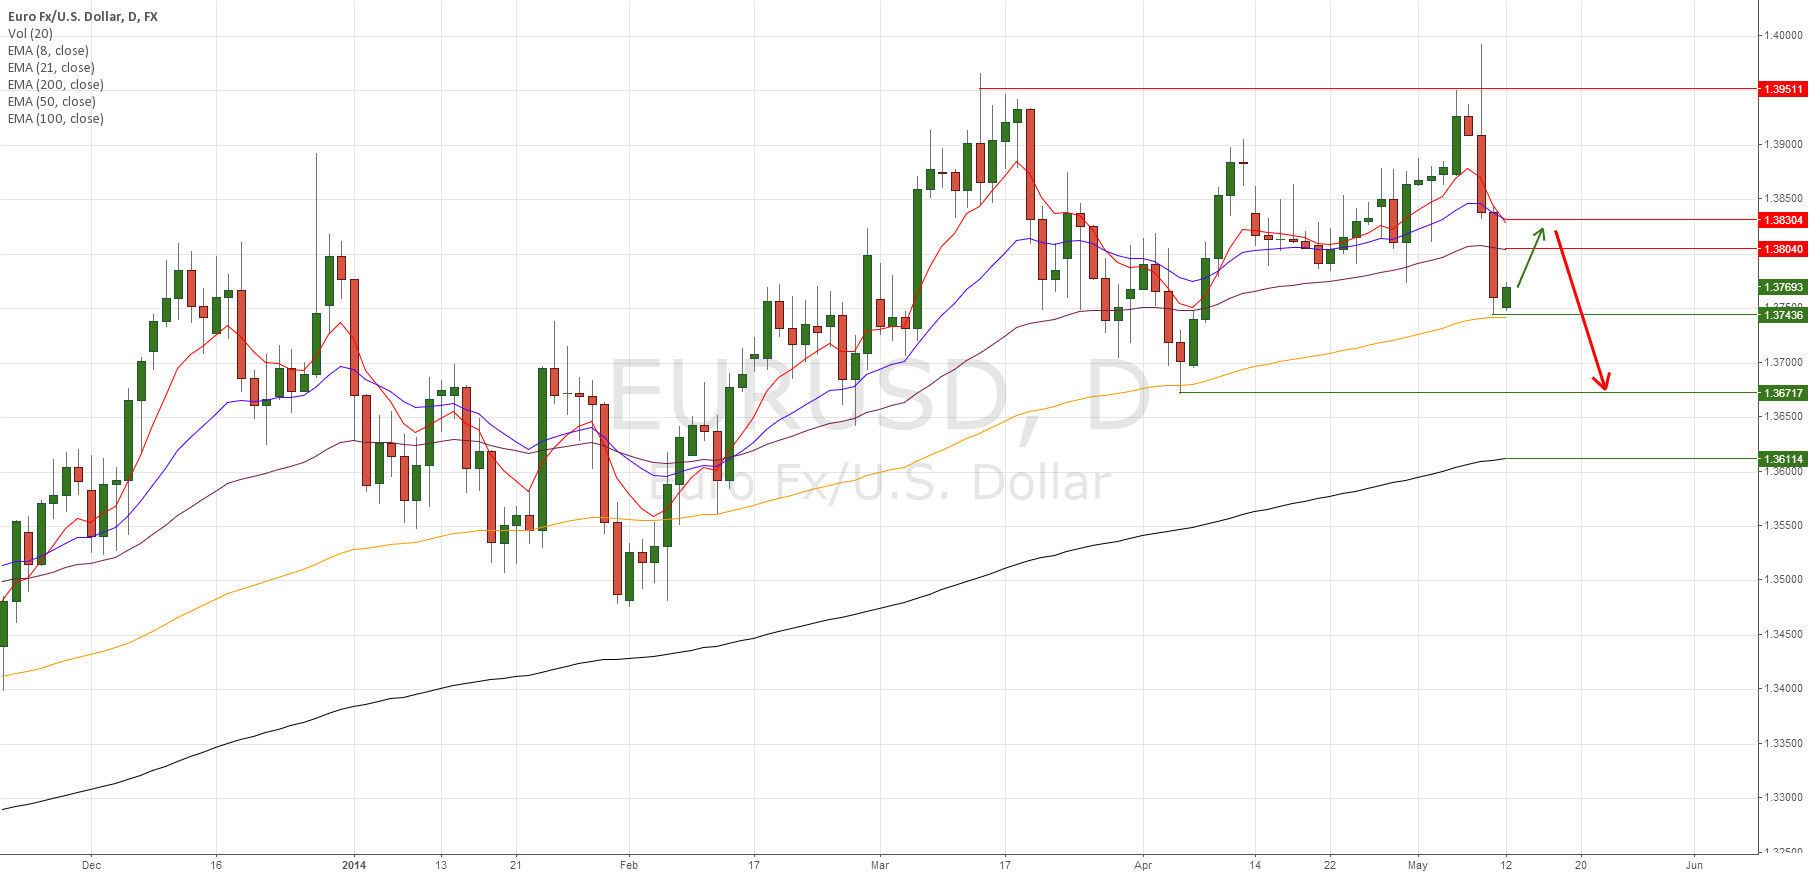 EUR/USD wait for retracement to sell after big move